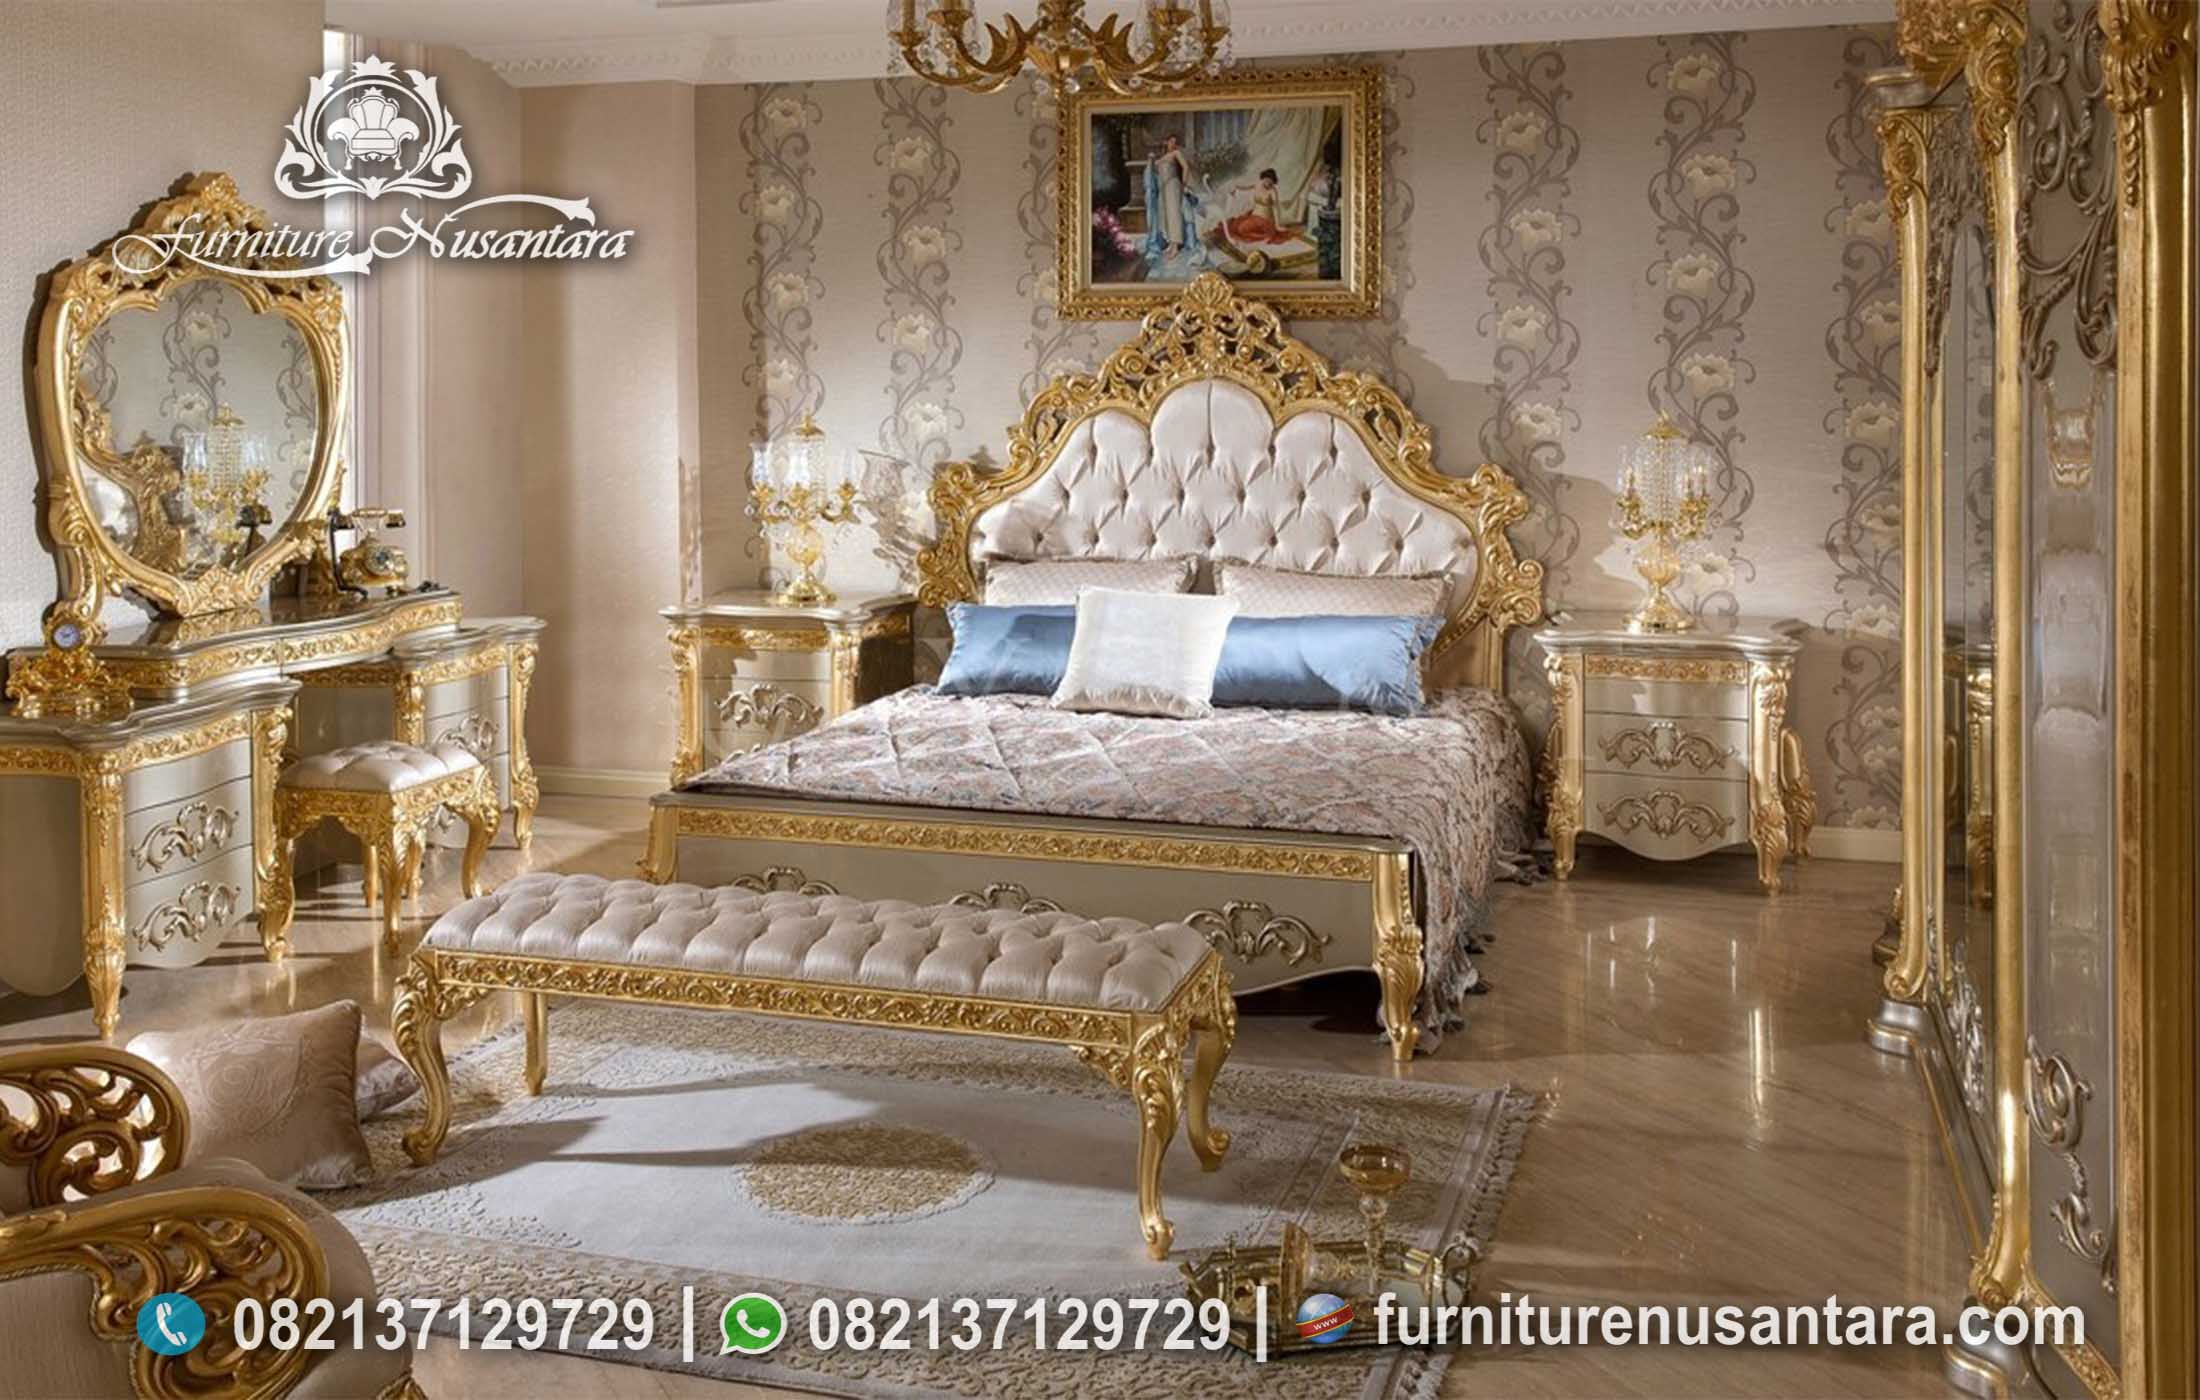 Kamar Set Model Timur Tengah KS-38, Furniture Nusantara